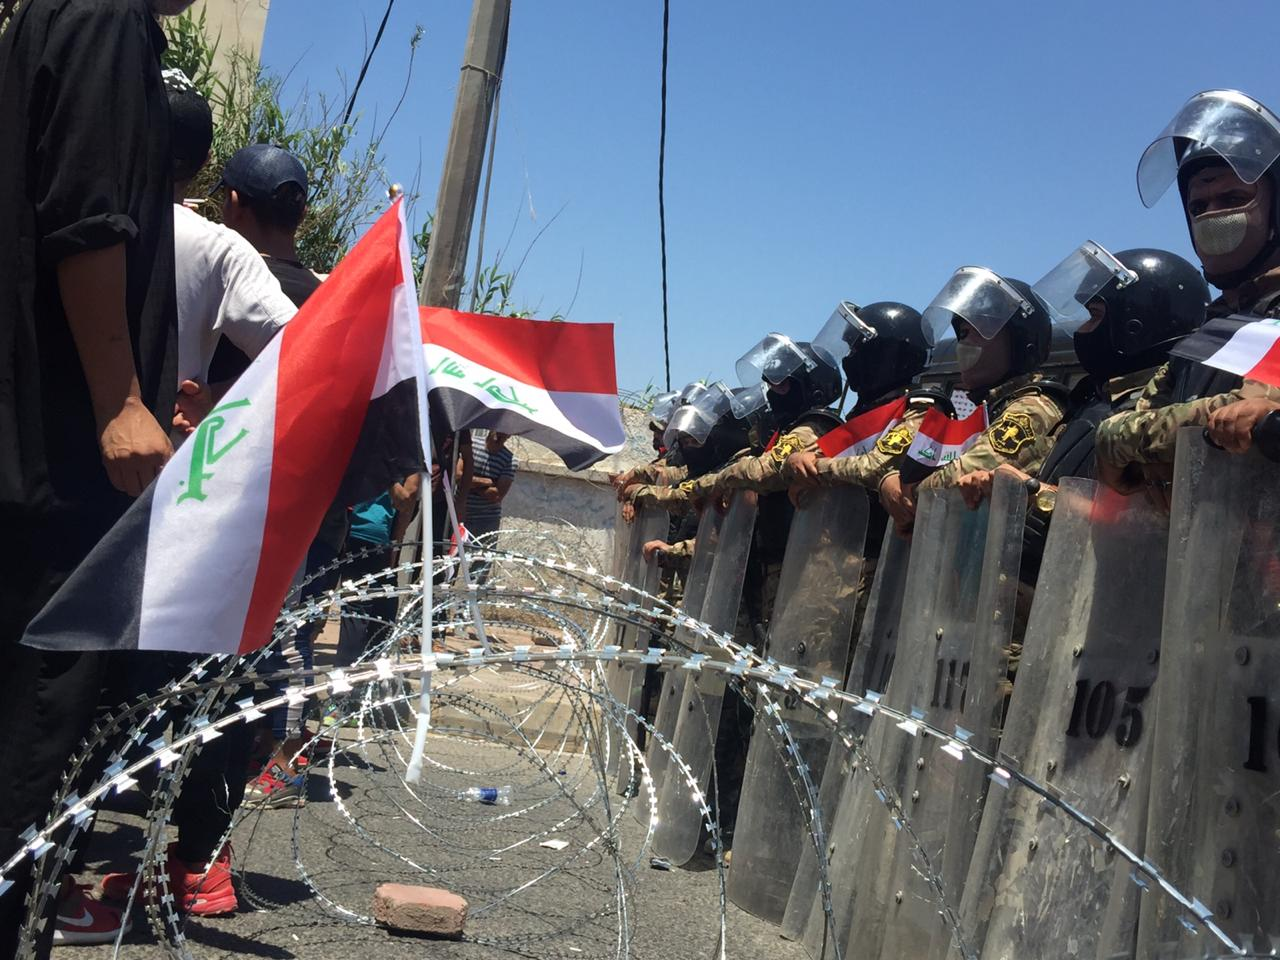 Iraqi security force prevent protesters coming close to a governmental building in Basra (Azhar Al-Rubaie)